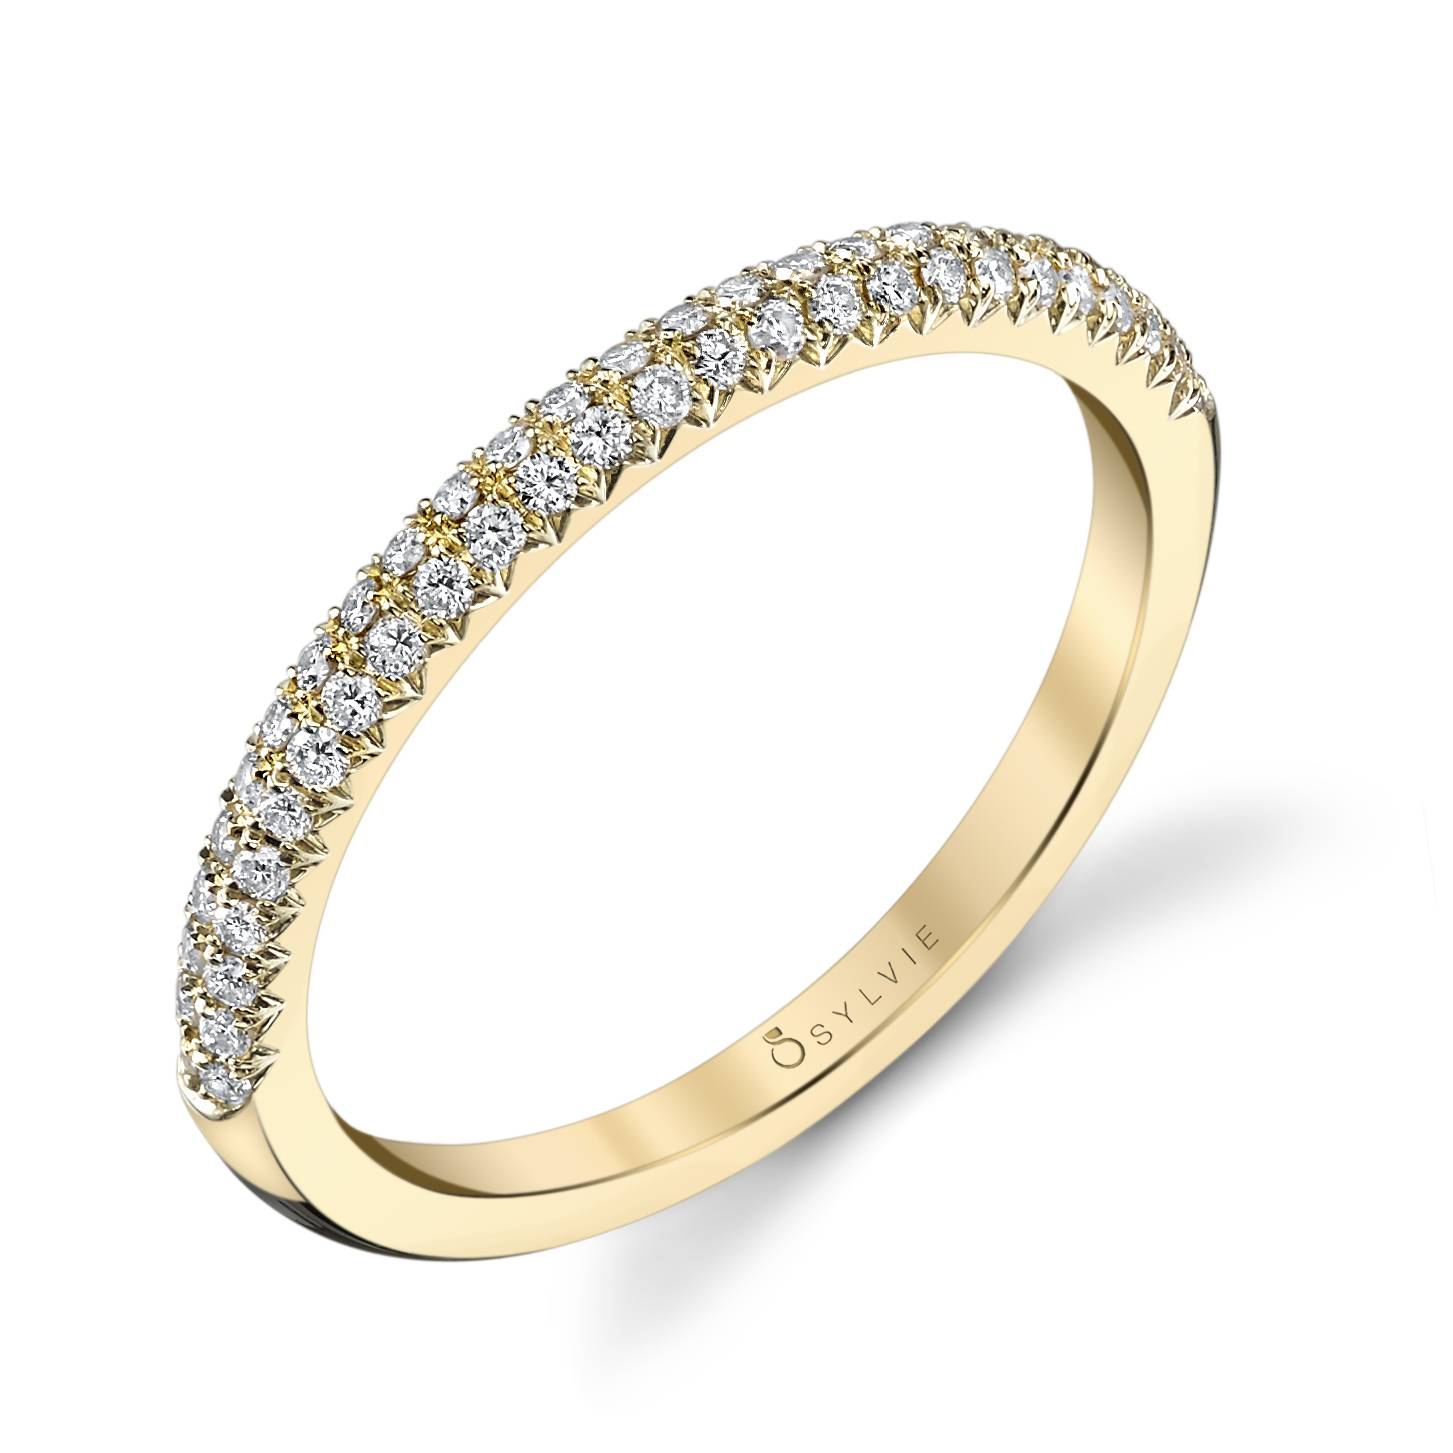 Arielle - Yellow Gold & Diamond Stackable Wedding Band